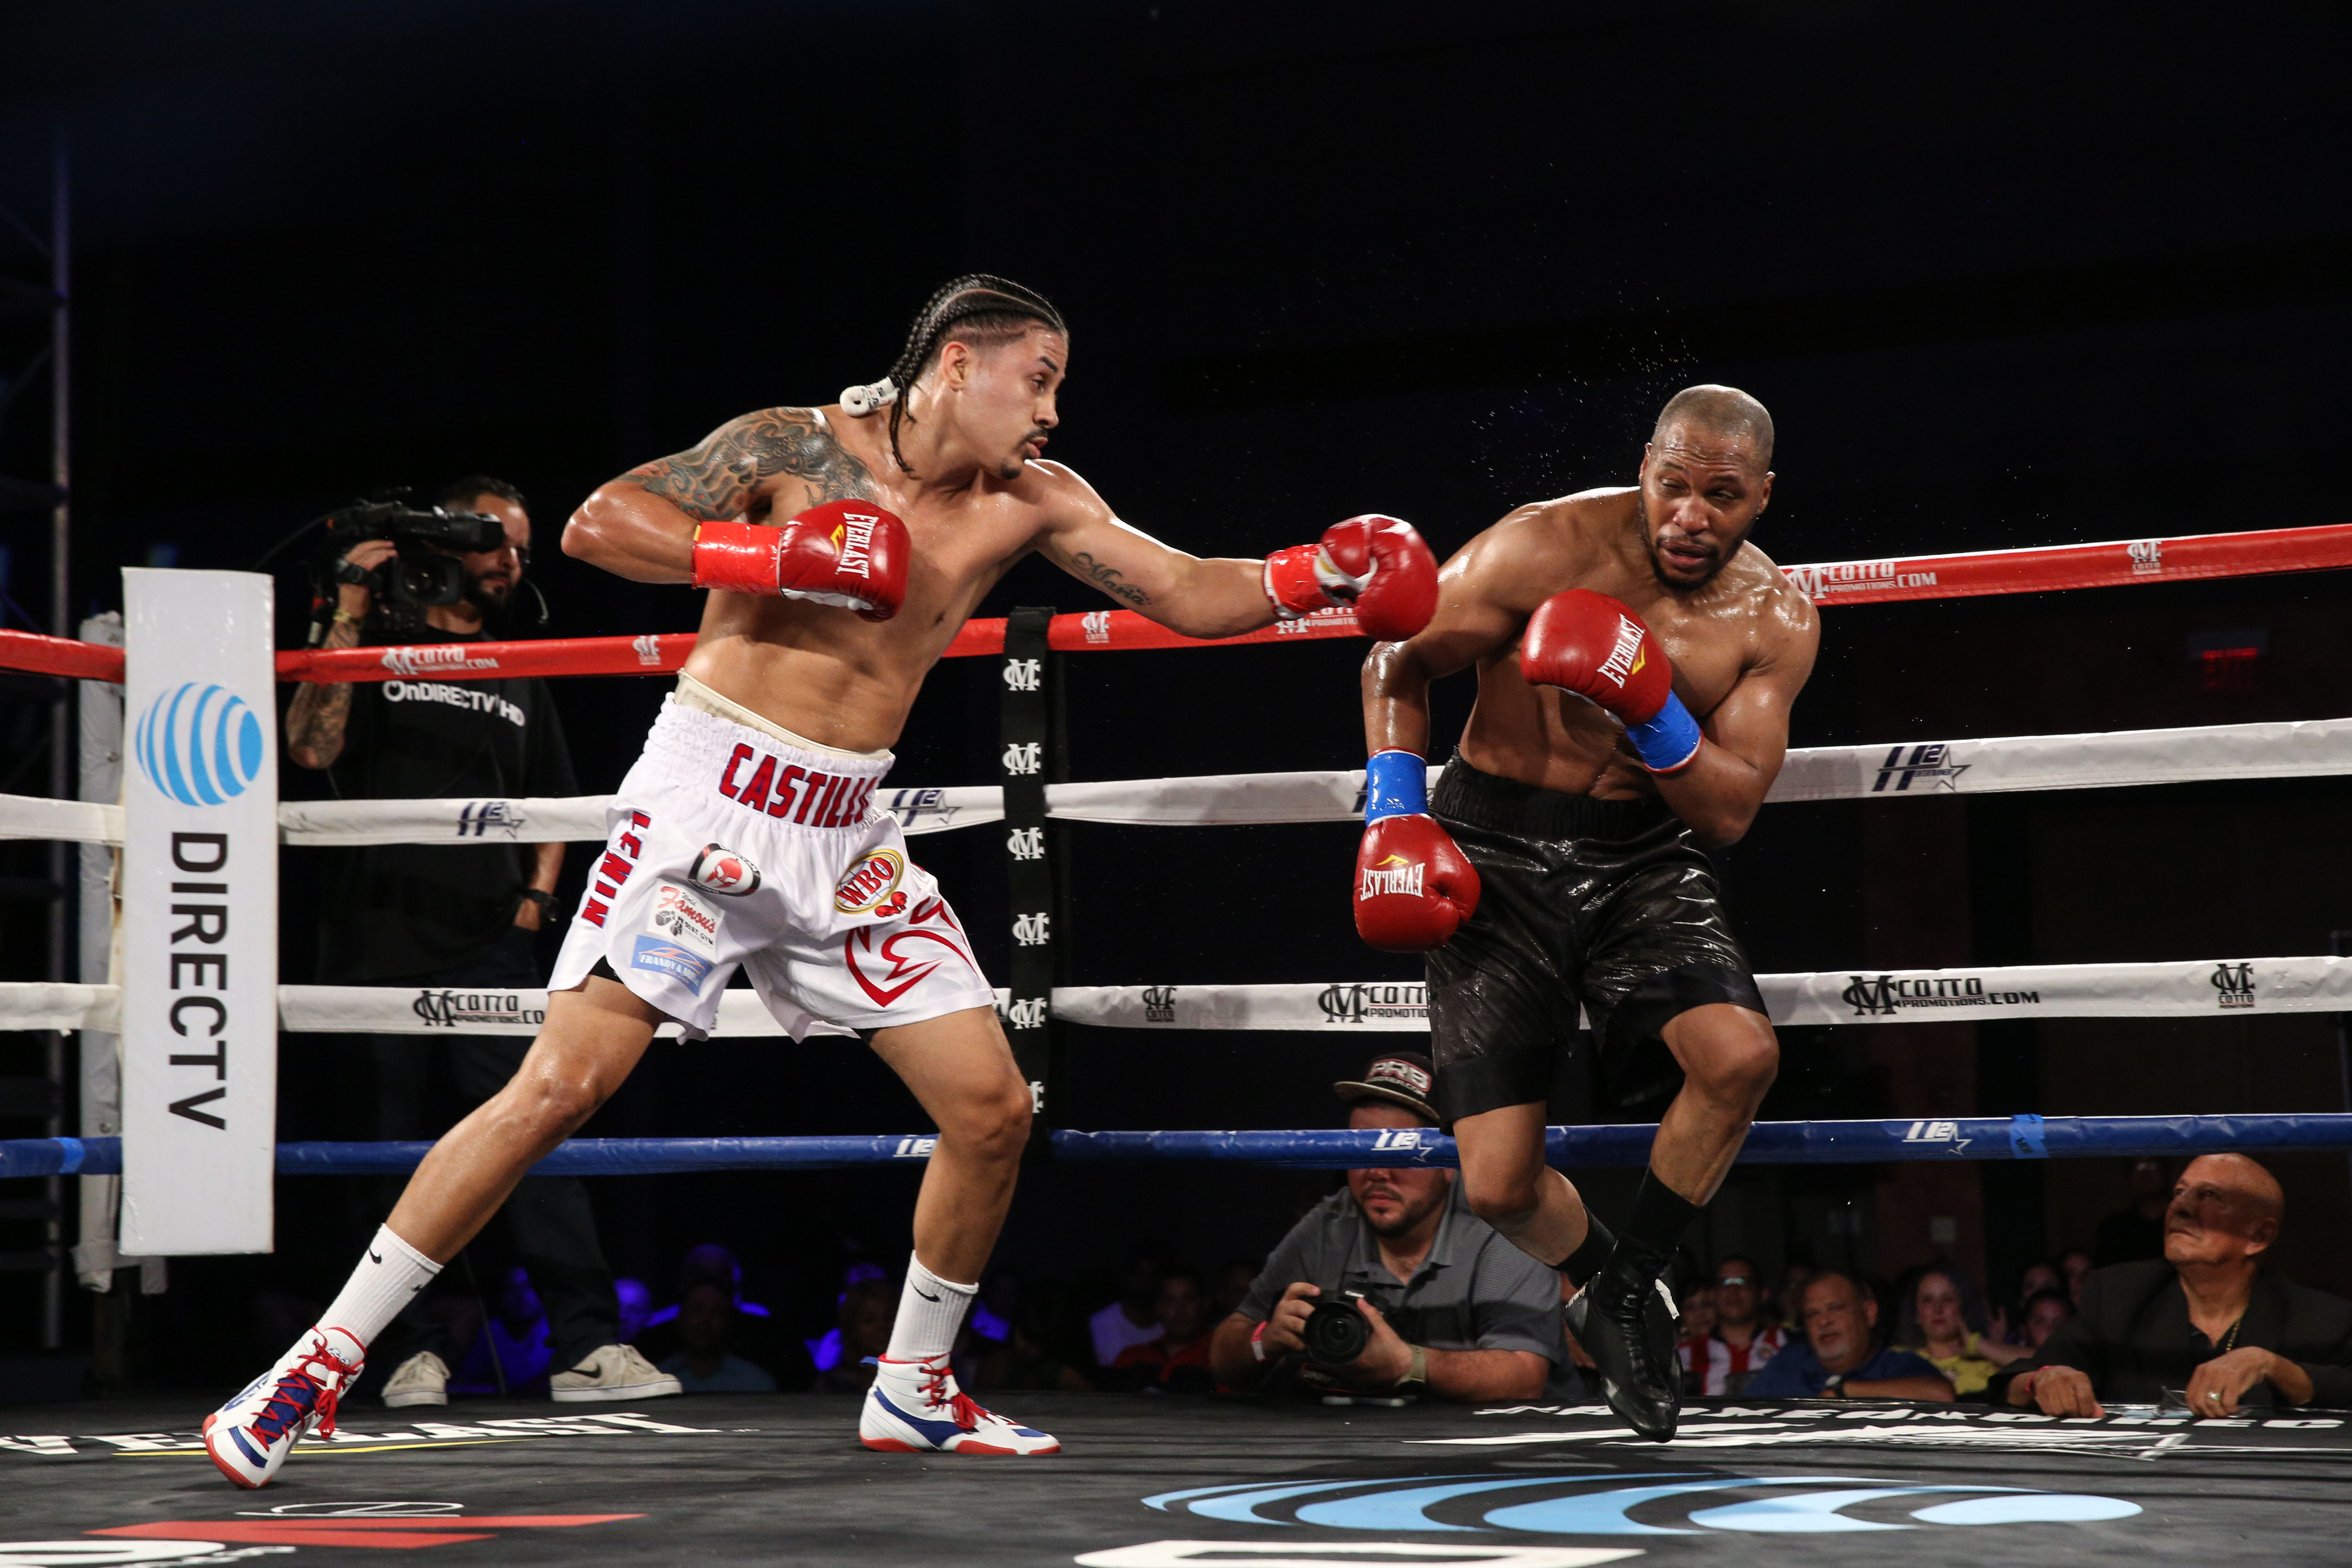 Lenin Castillo vs Aaron Mitchell 02